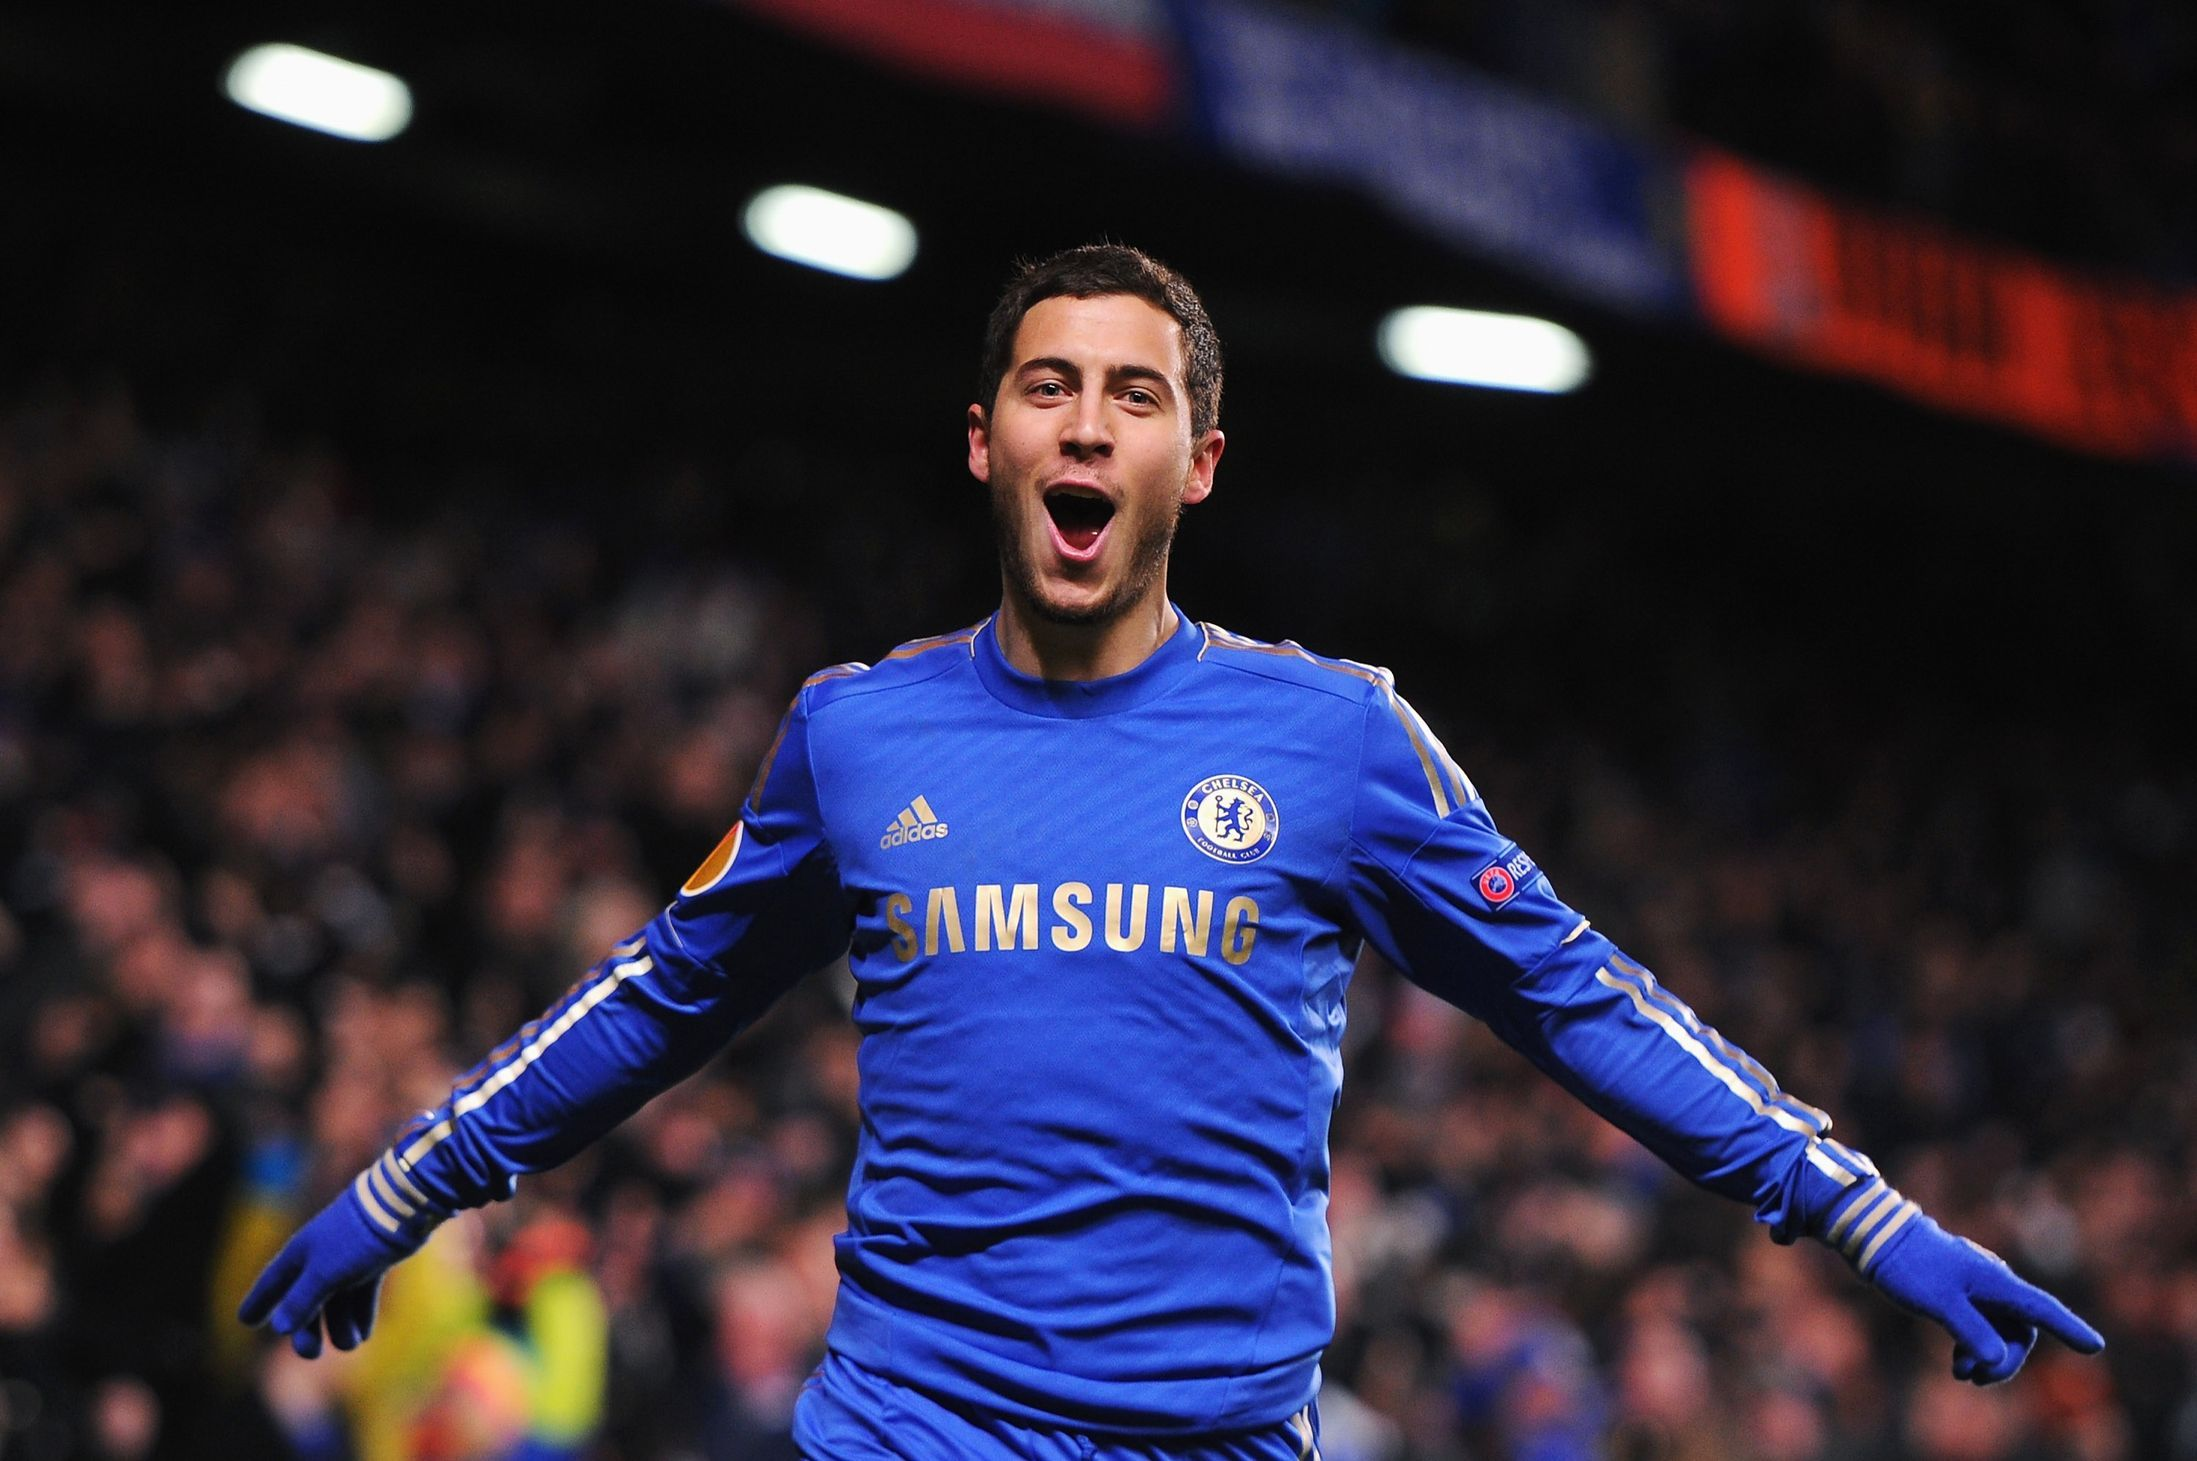 Eden hazard hd wallpaper httpwallpapersoccereden eden hazard hd wallpaper httpwallpapersoccer voltagebd Image collections